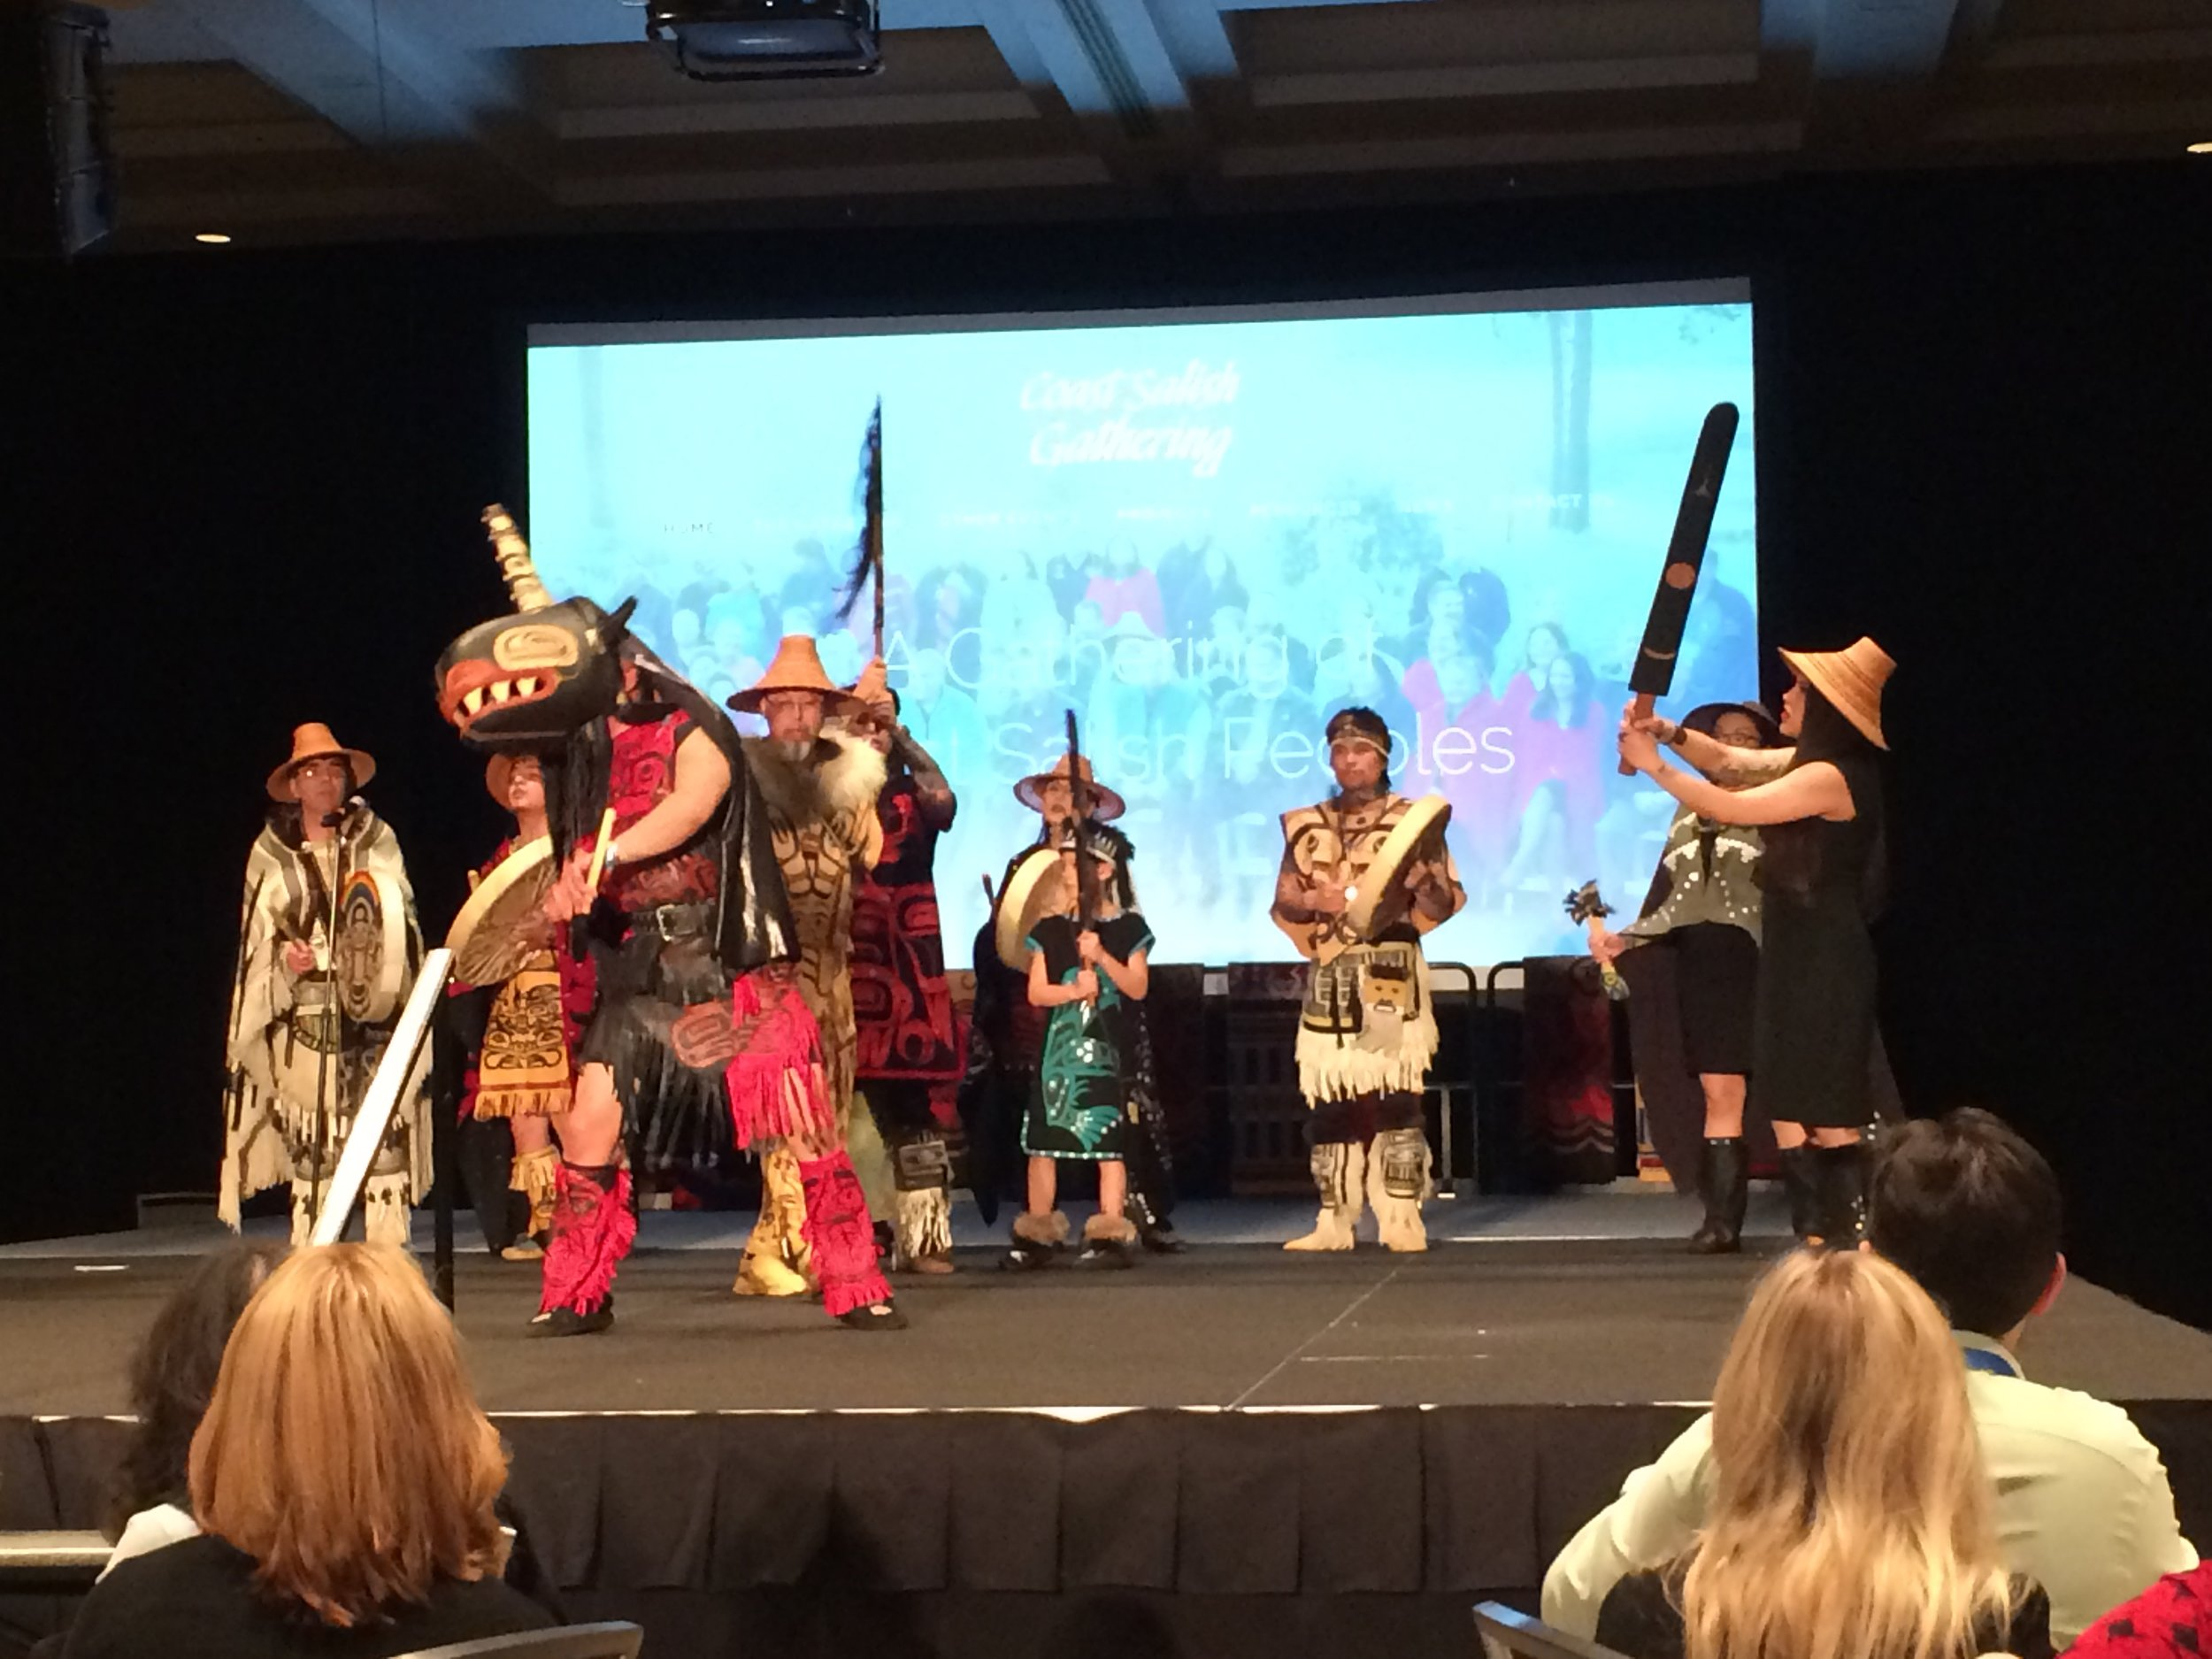 The Tlingit-Haida intergenerational dance group.